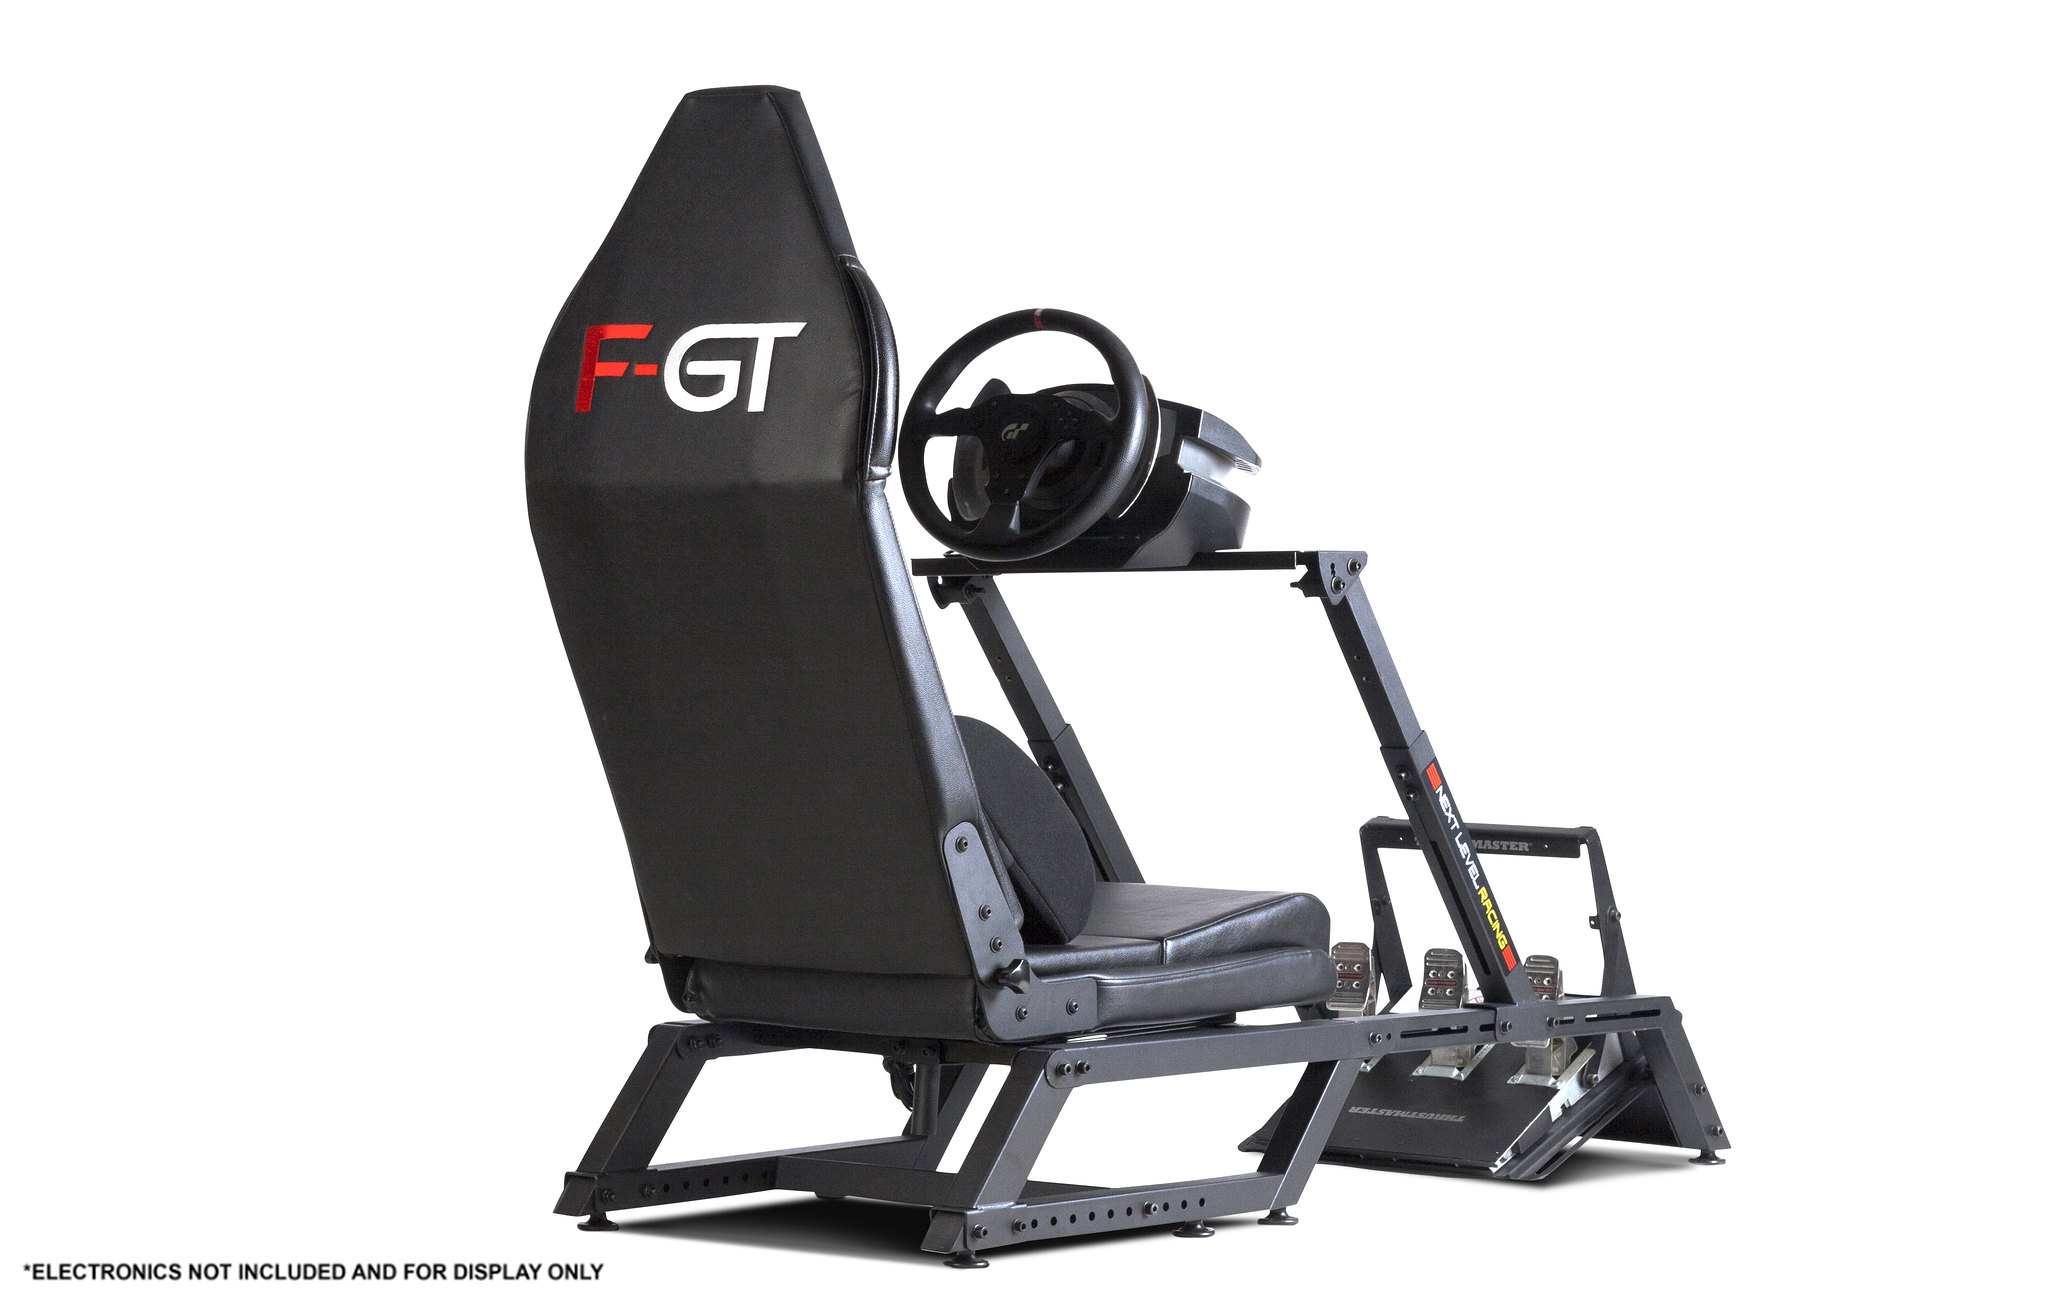 Next Level Racing F-GT Matte Black Simulator Cockpit 12